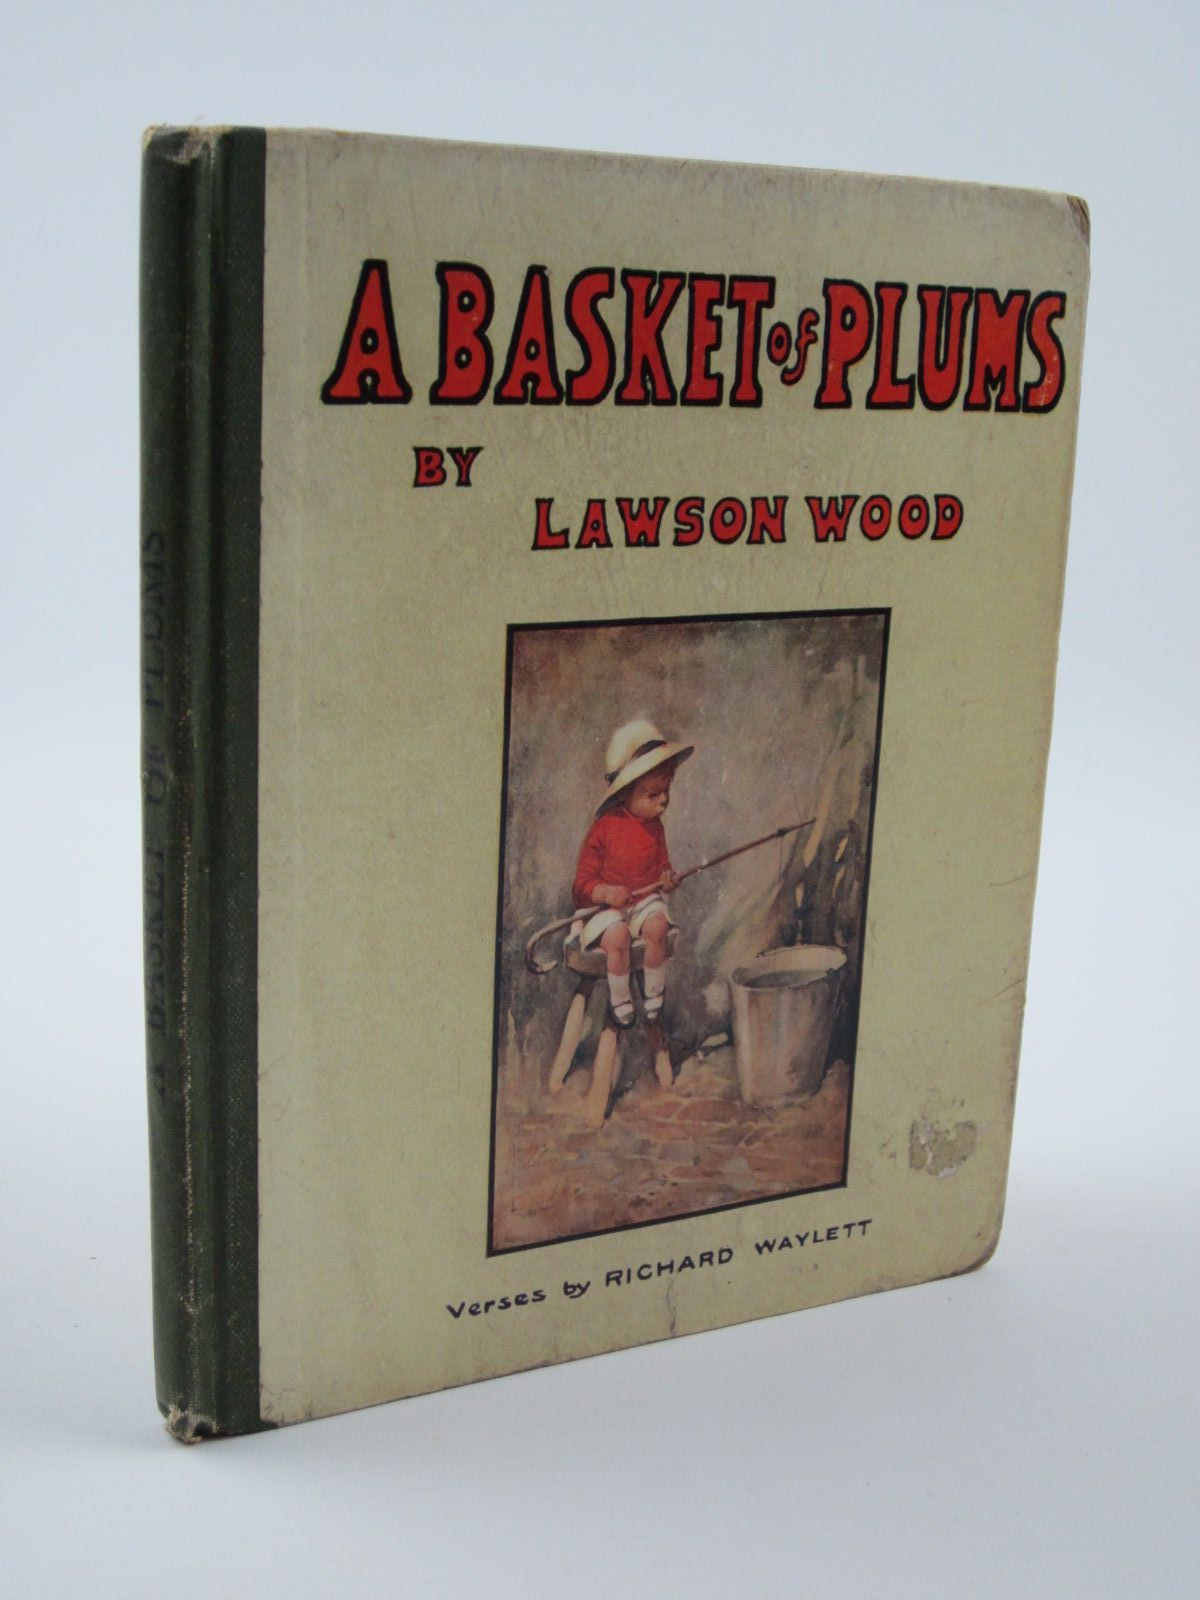 Photo of A BASKET OF PLUMS written by Waylett, Richard illustrated by Wood, Lawson published by Gale & Polden, Ltd. (STOCK CODE: 1309666)  for sale by Stella & Rose's Books